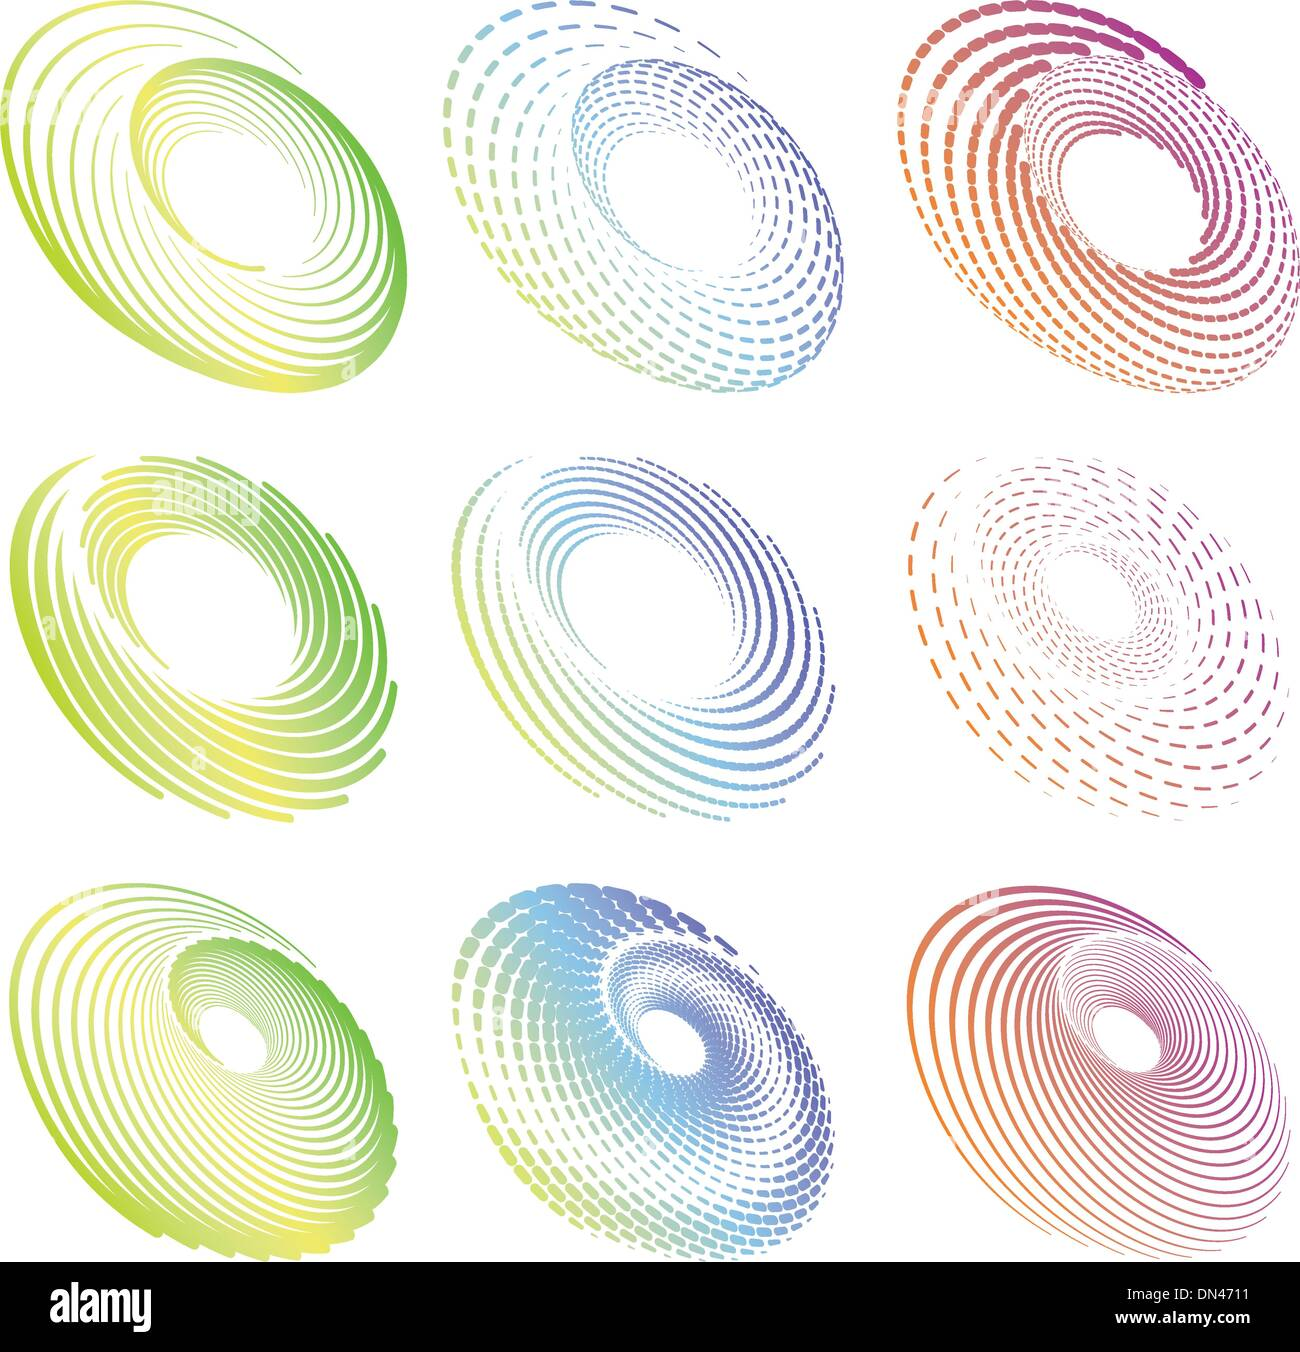 Creative design circle and round symmetric elements - Stock Image